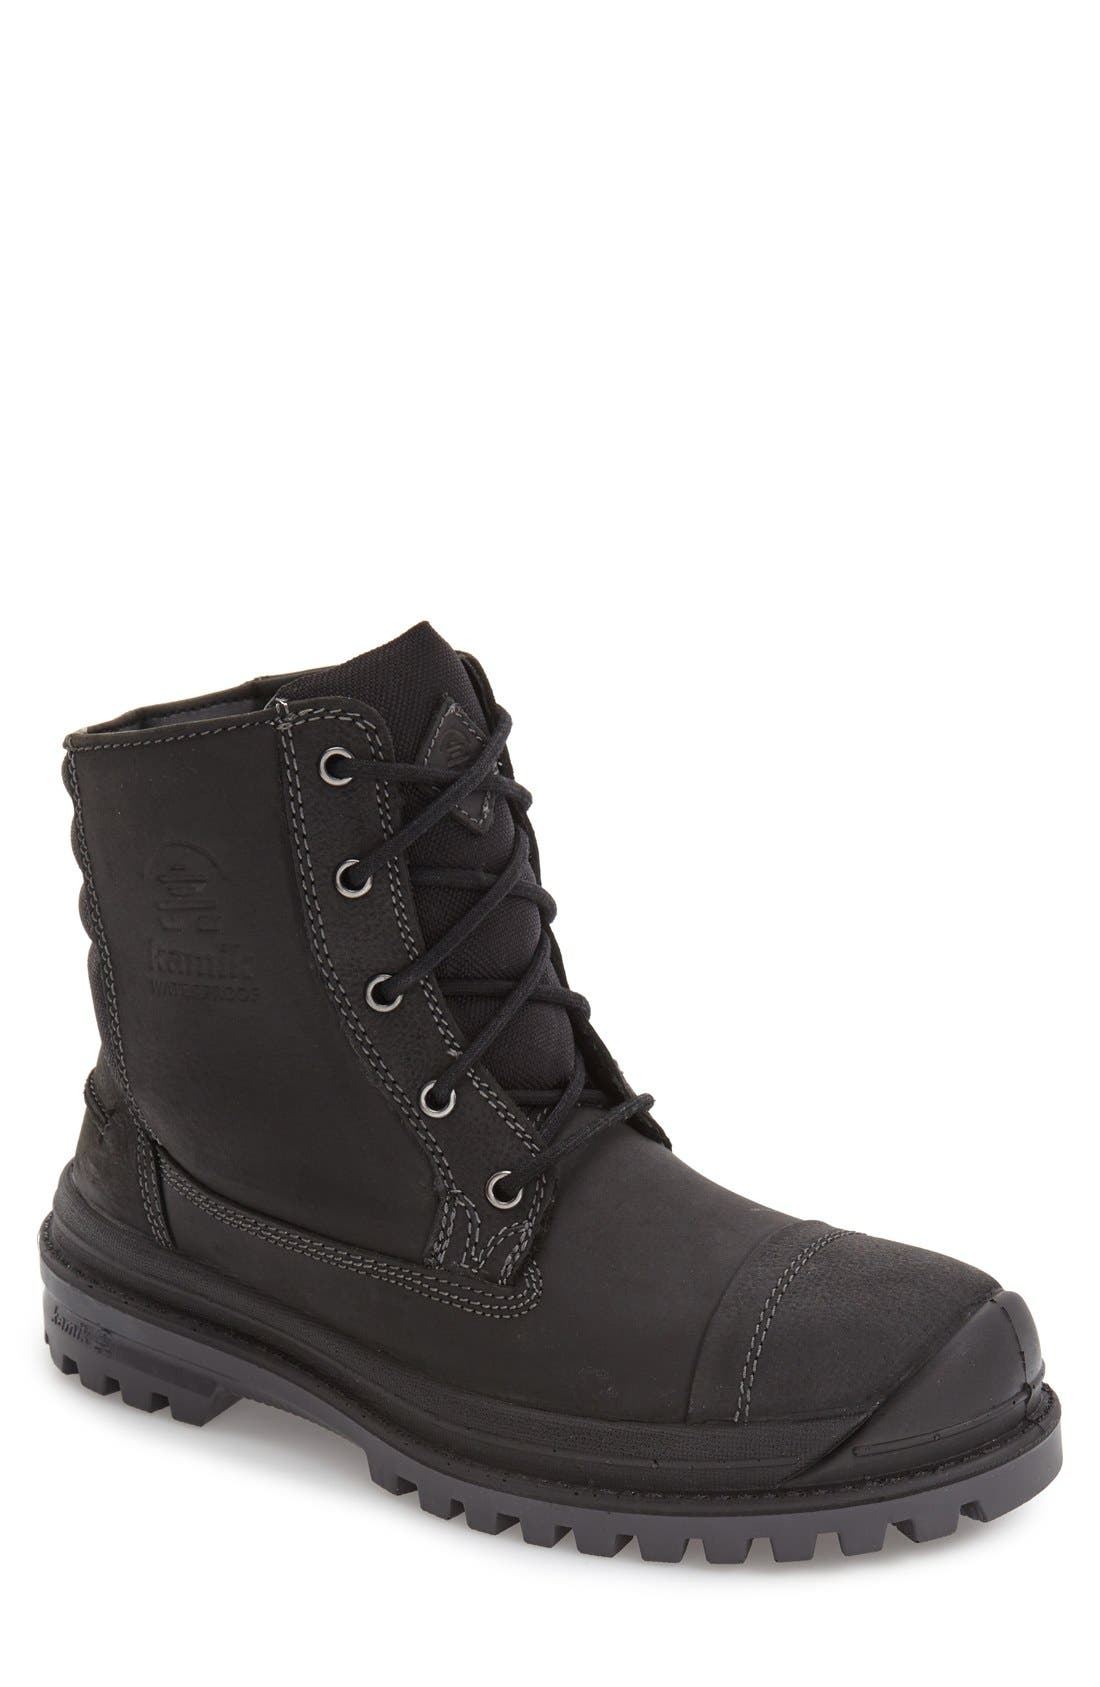 Alternate Image 1 Selected - Kamik Griffon Waterproof Boot (Men)